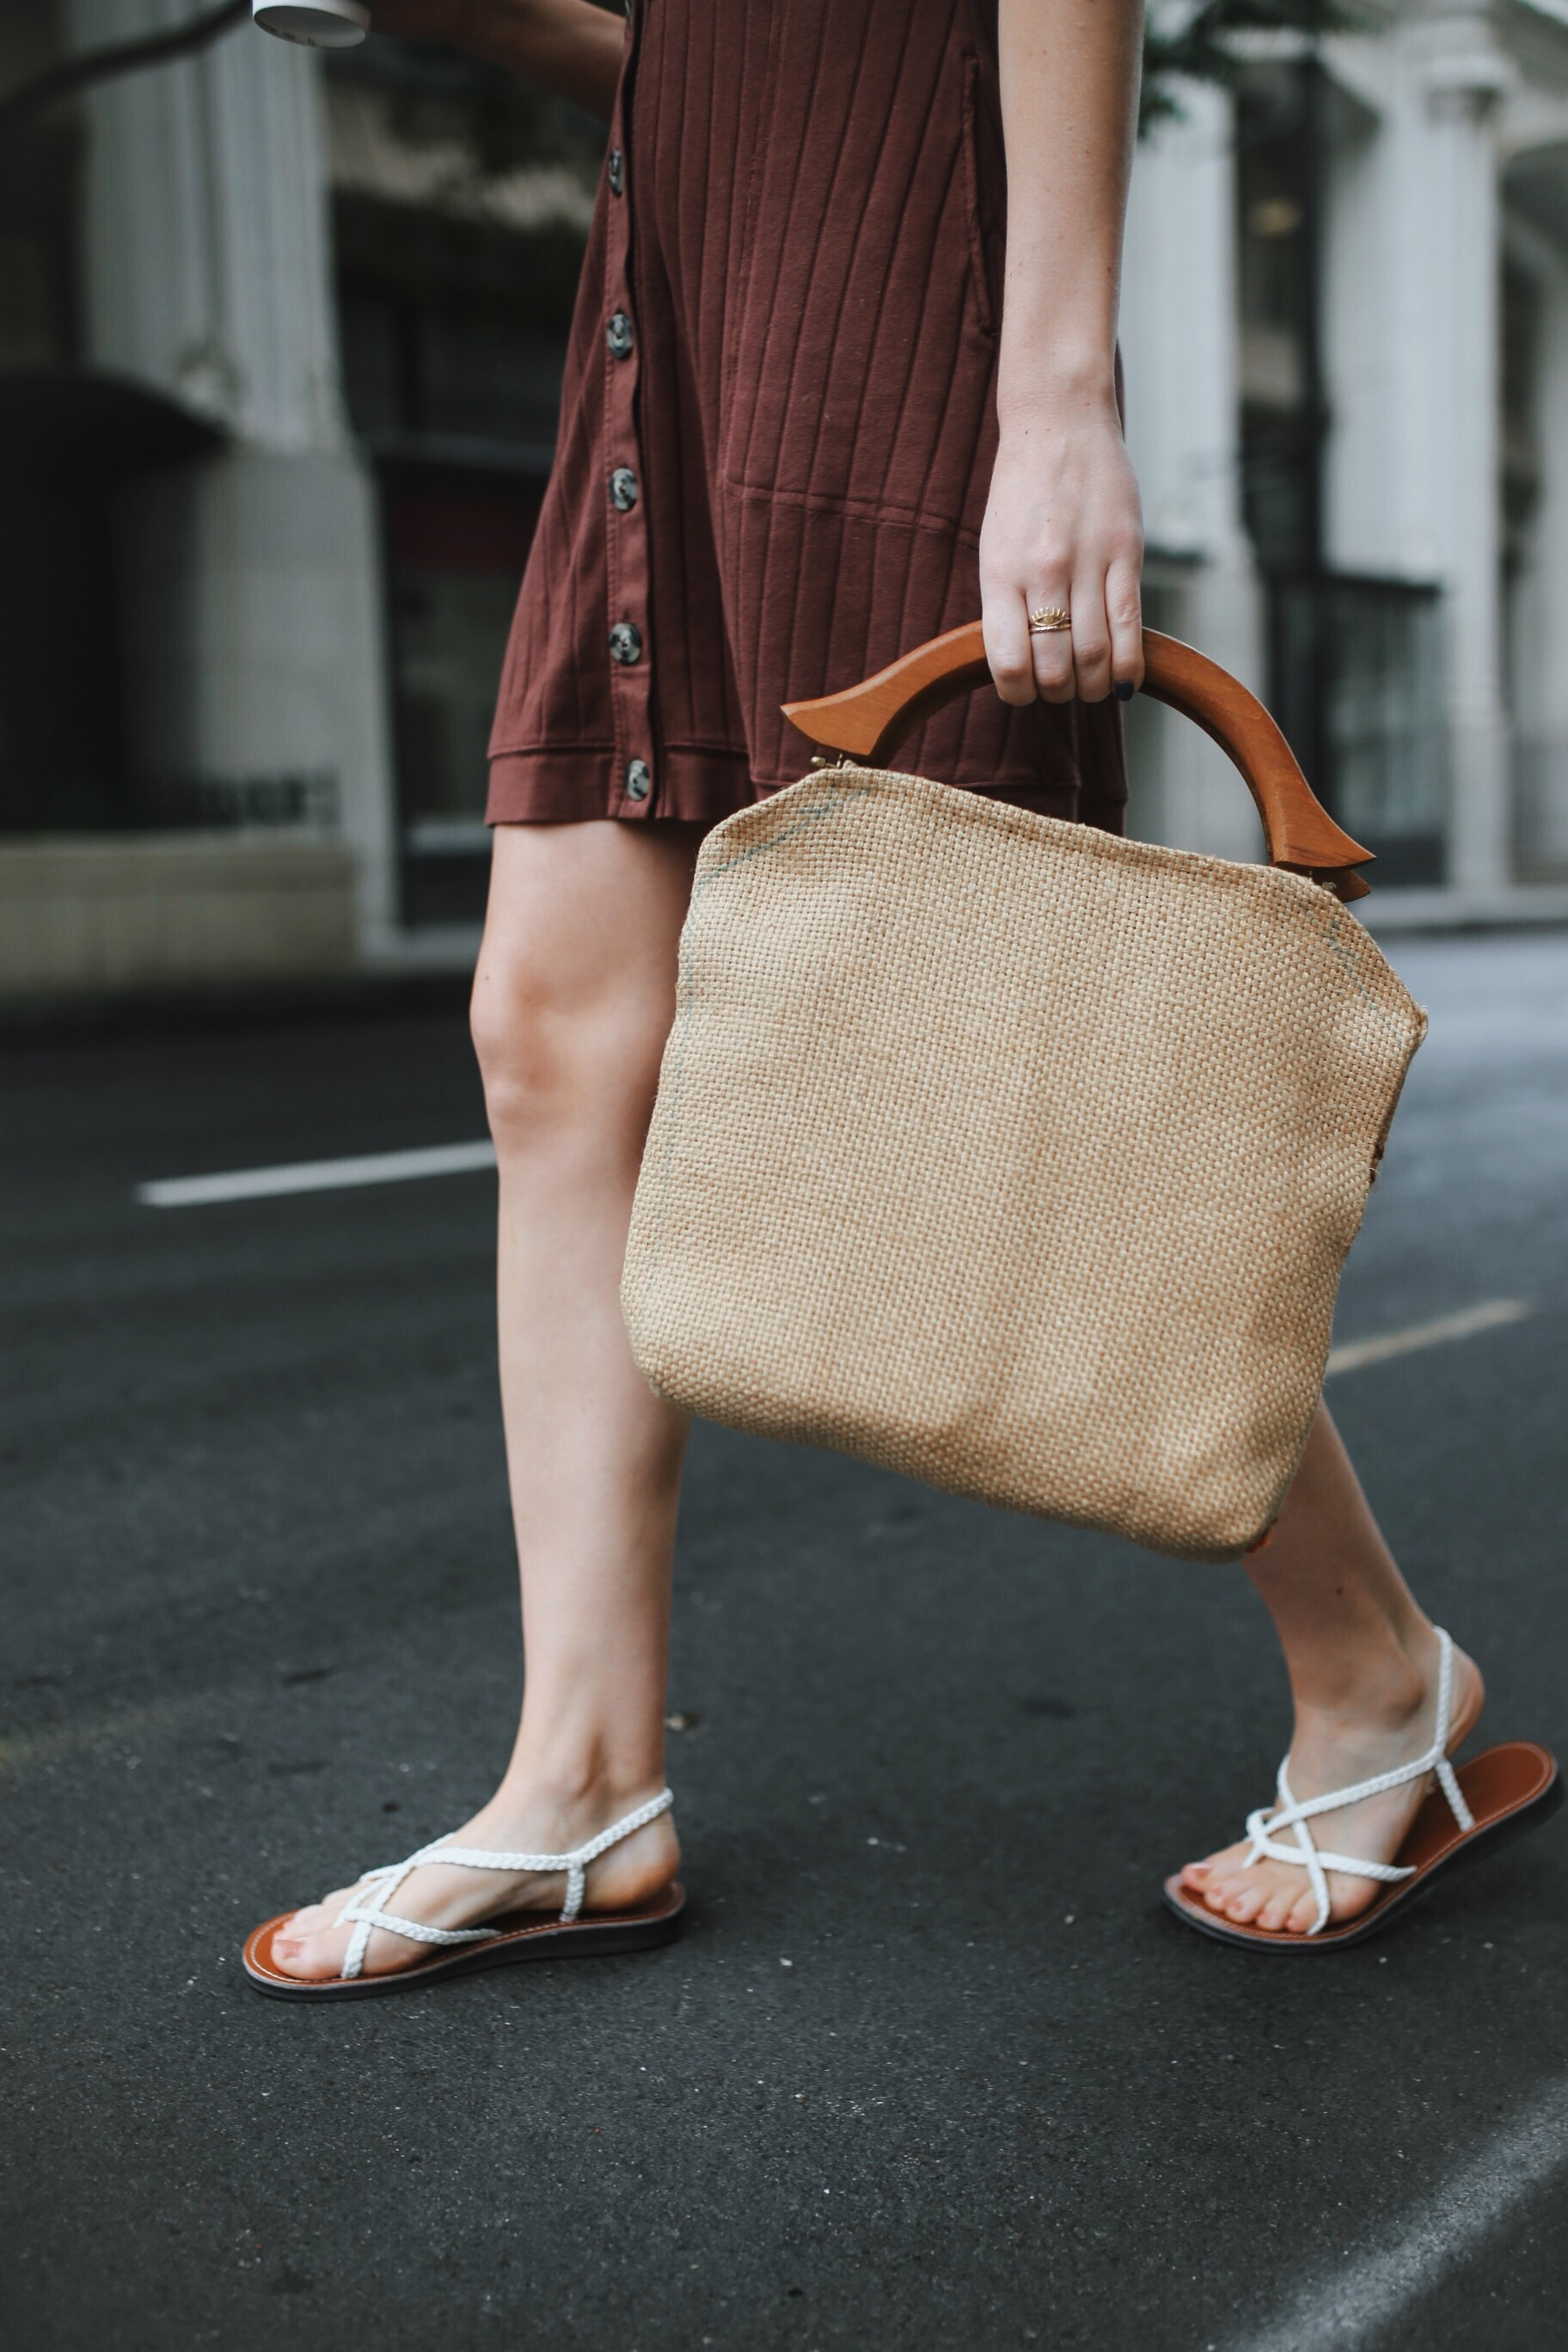 Collab with Capana Sandals | Direction & styling for blog